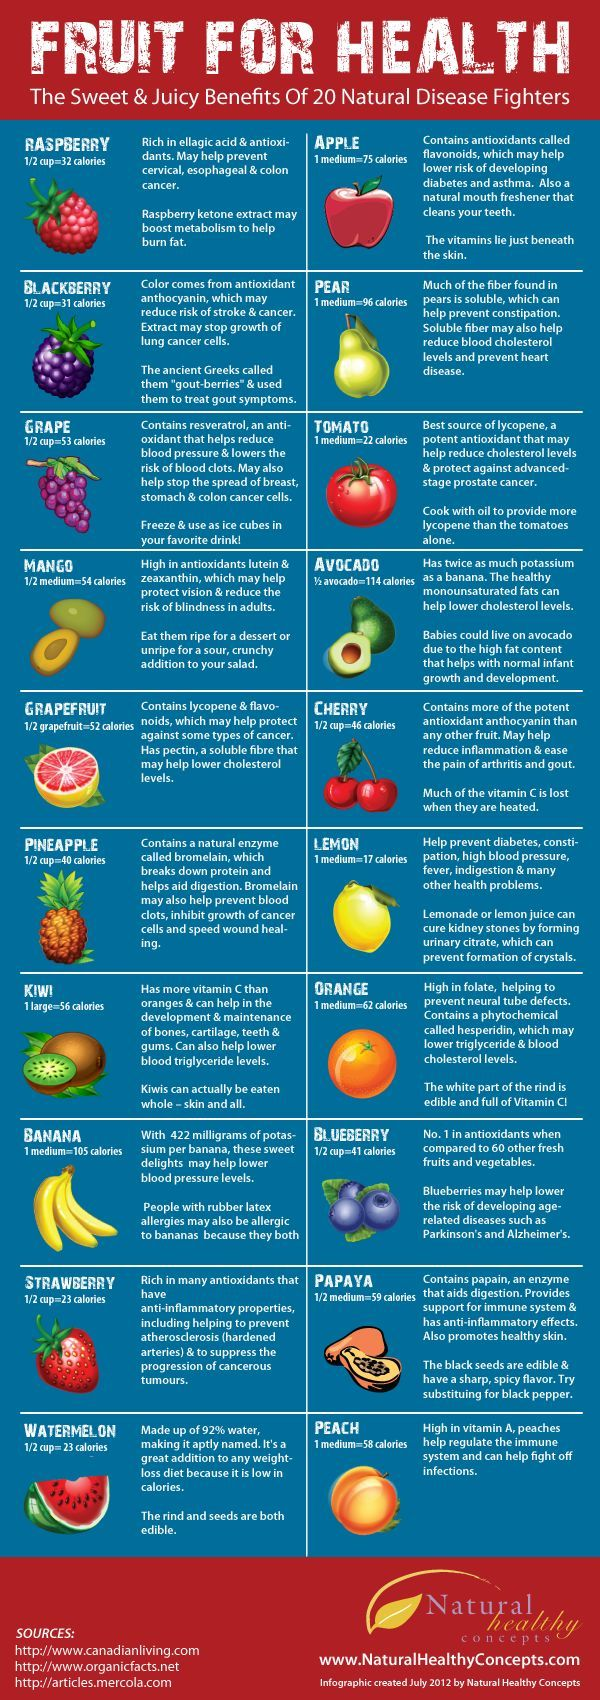 Top Fruits for Your Health